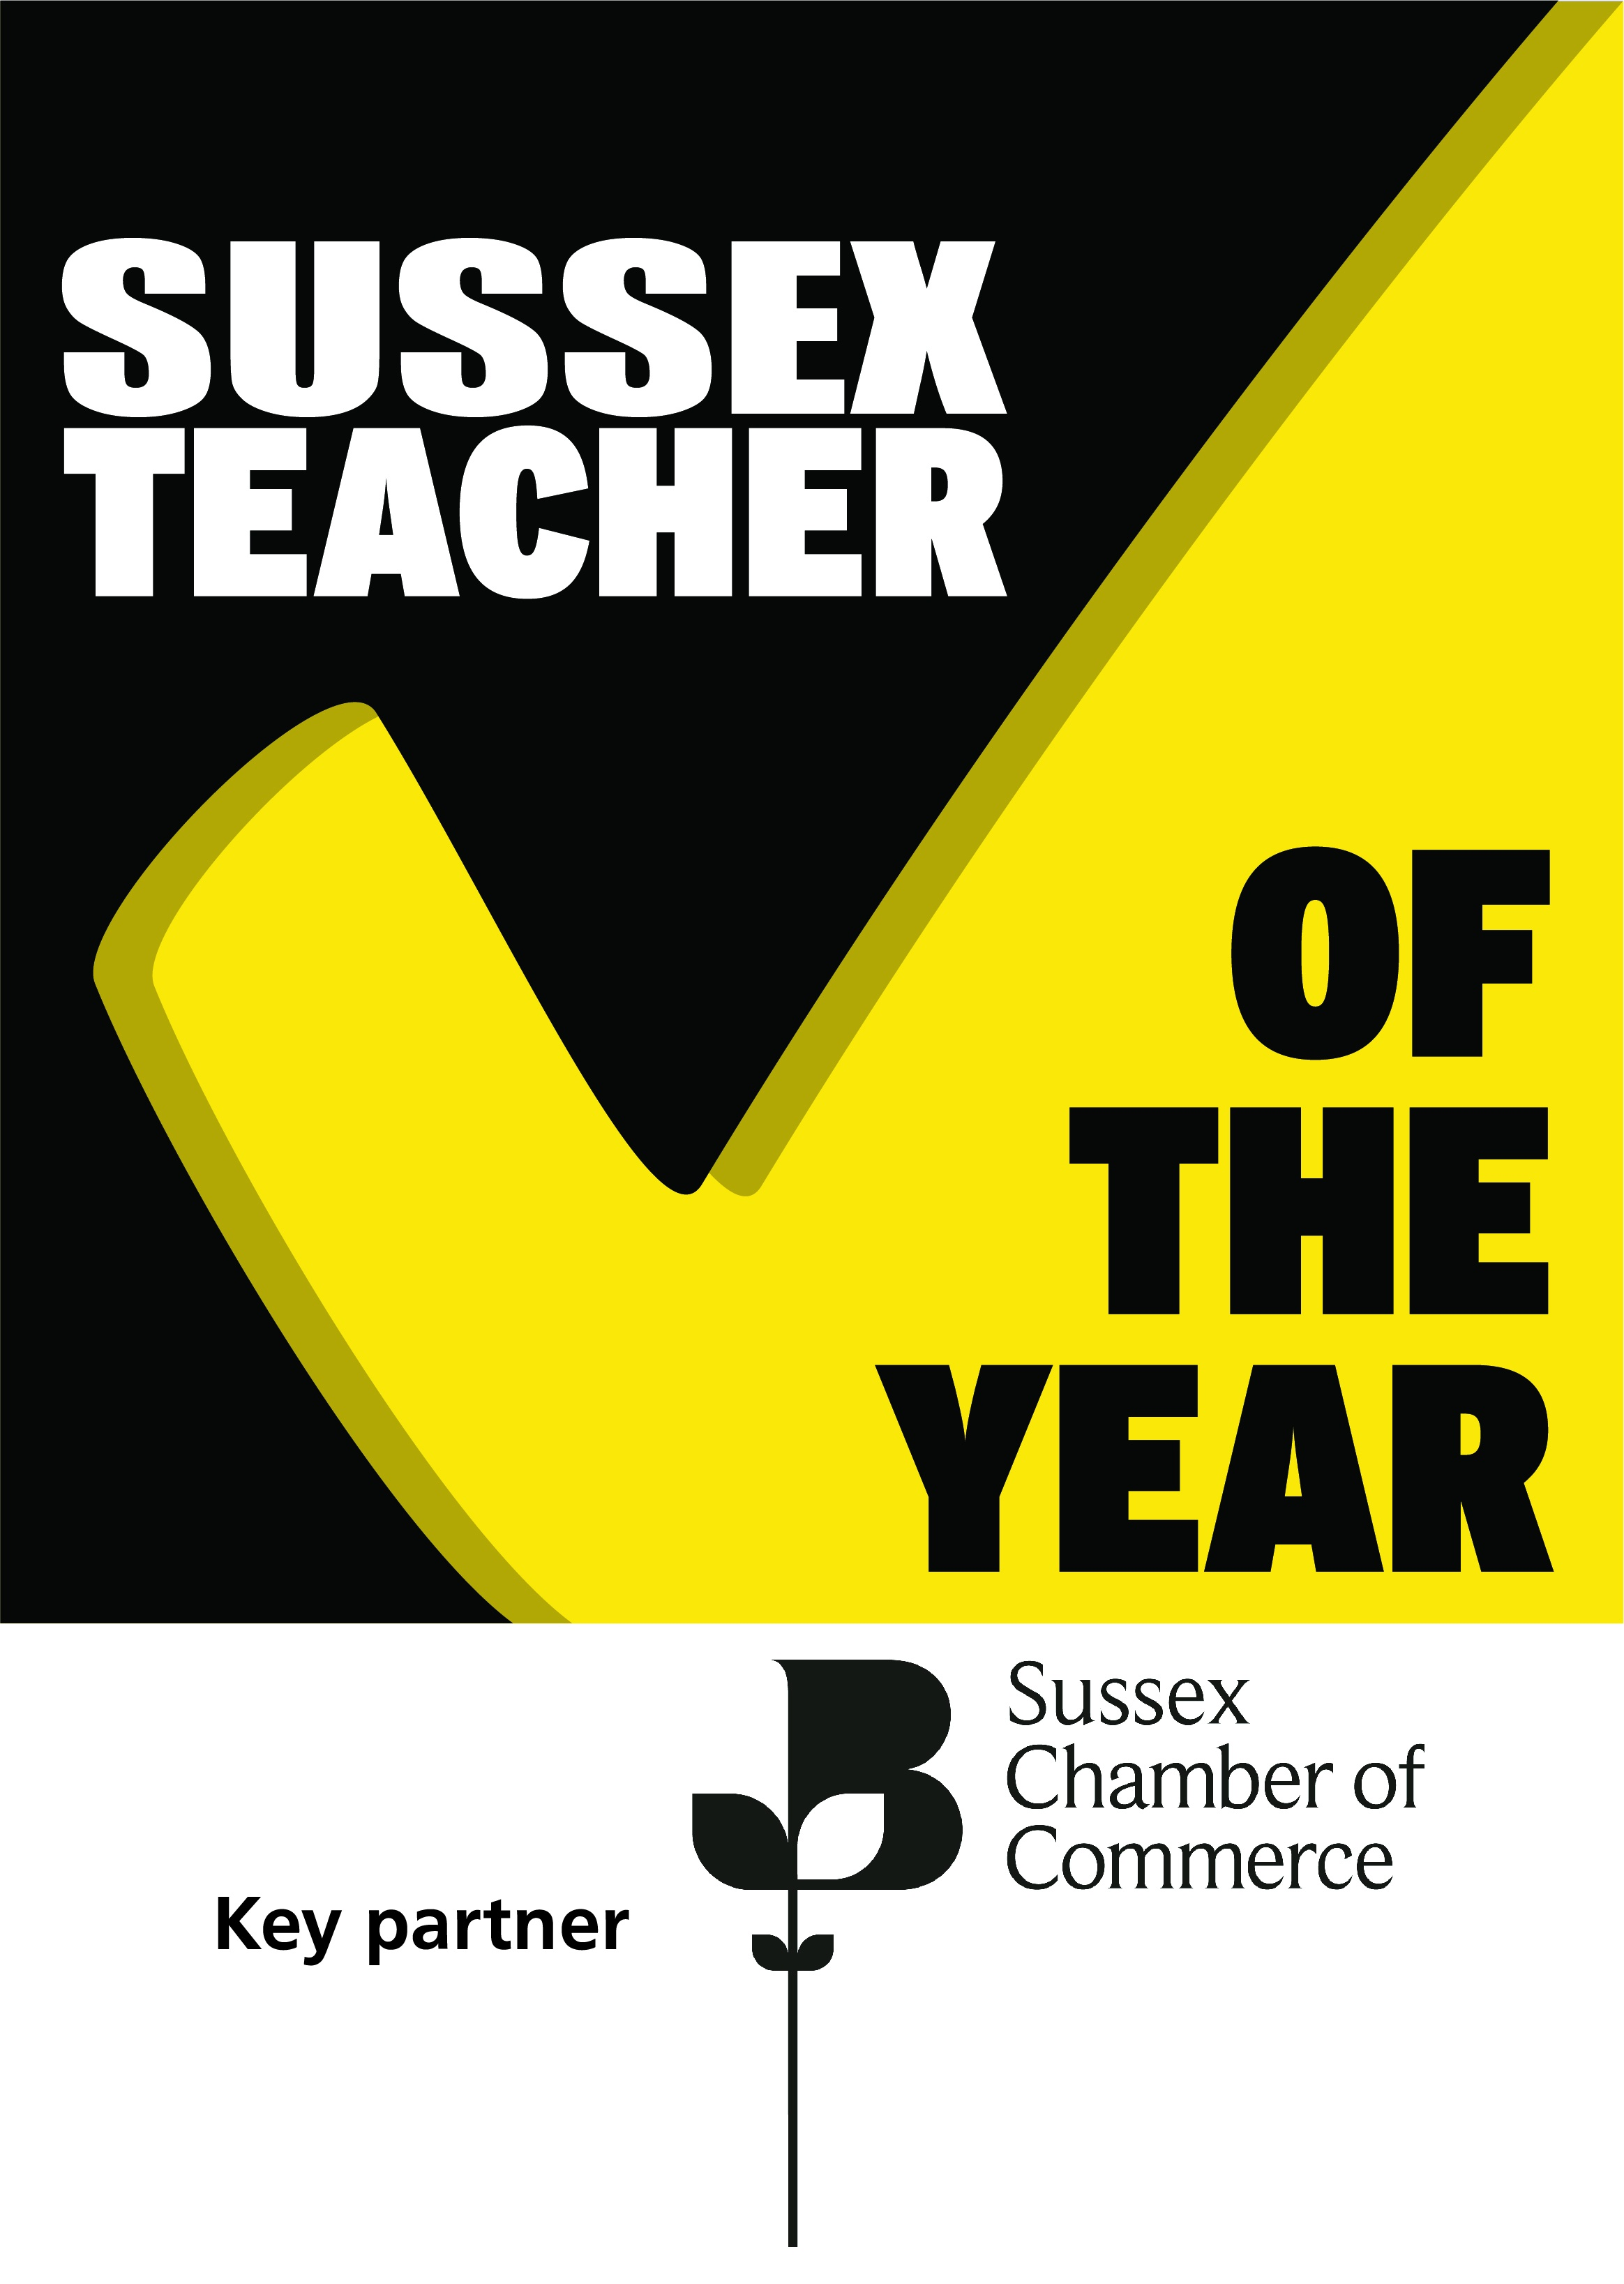 sis_teacher_of_the_year_key_partner_sussexchambercommerce_3274